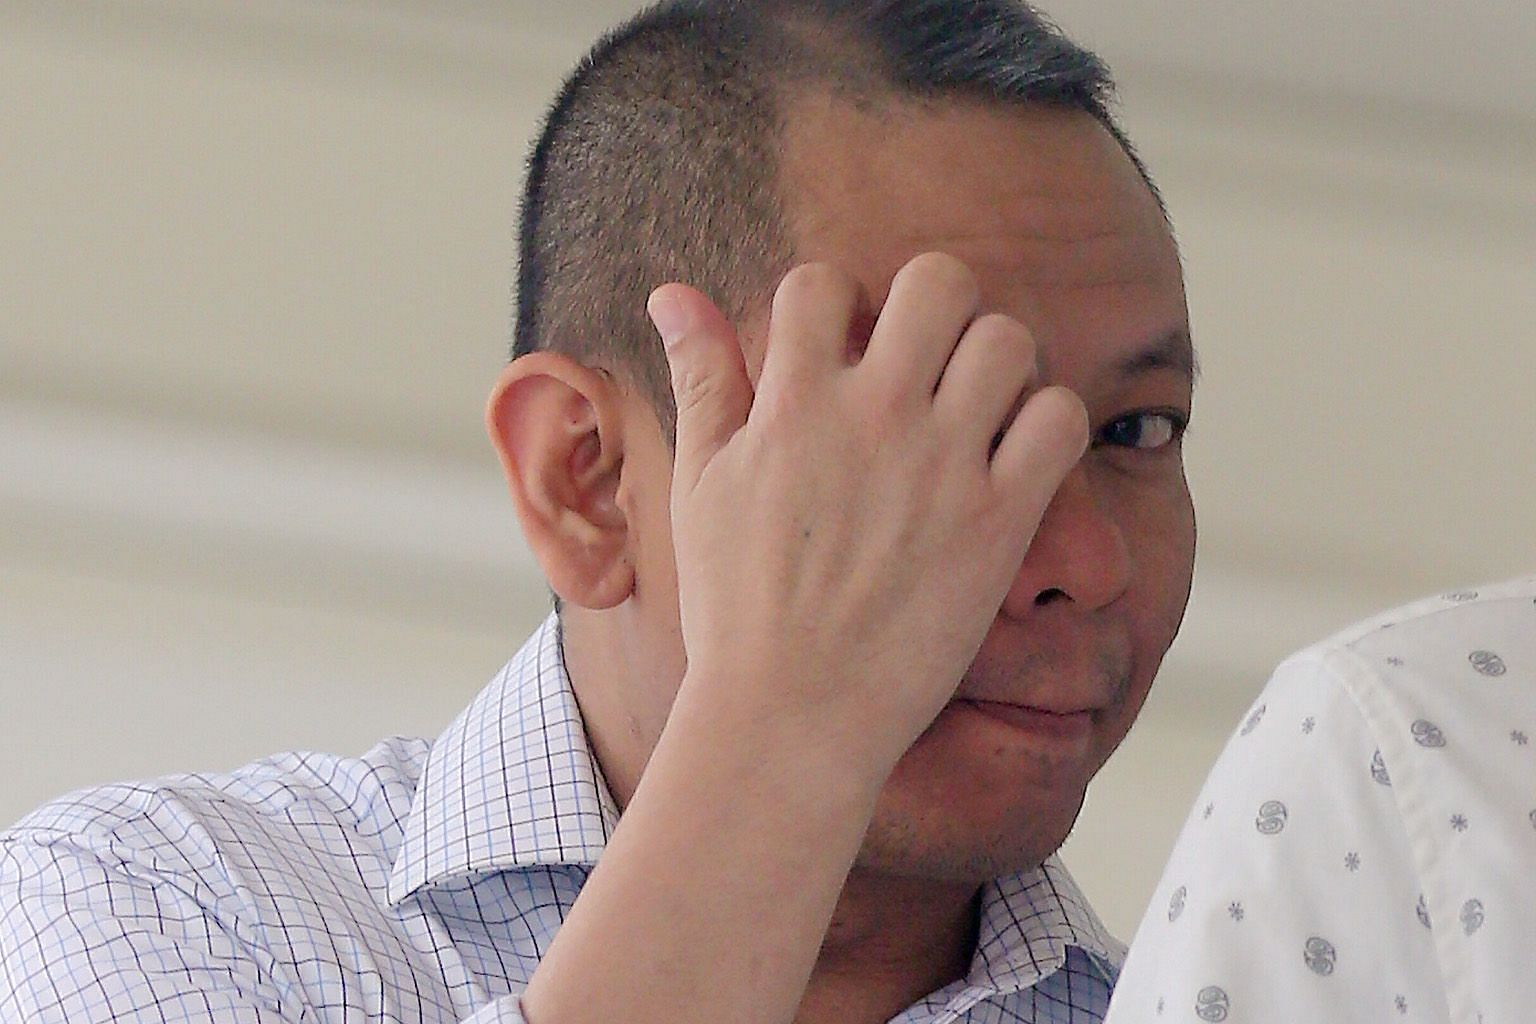 Keith Thaddeus Kamal Tsukada pleaded guilty to four offences under the Legal Profession Act.